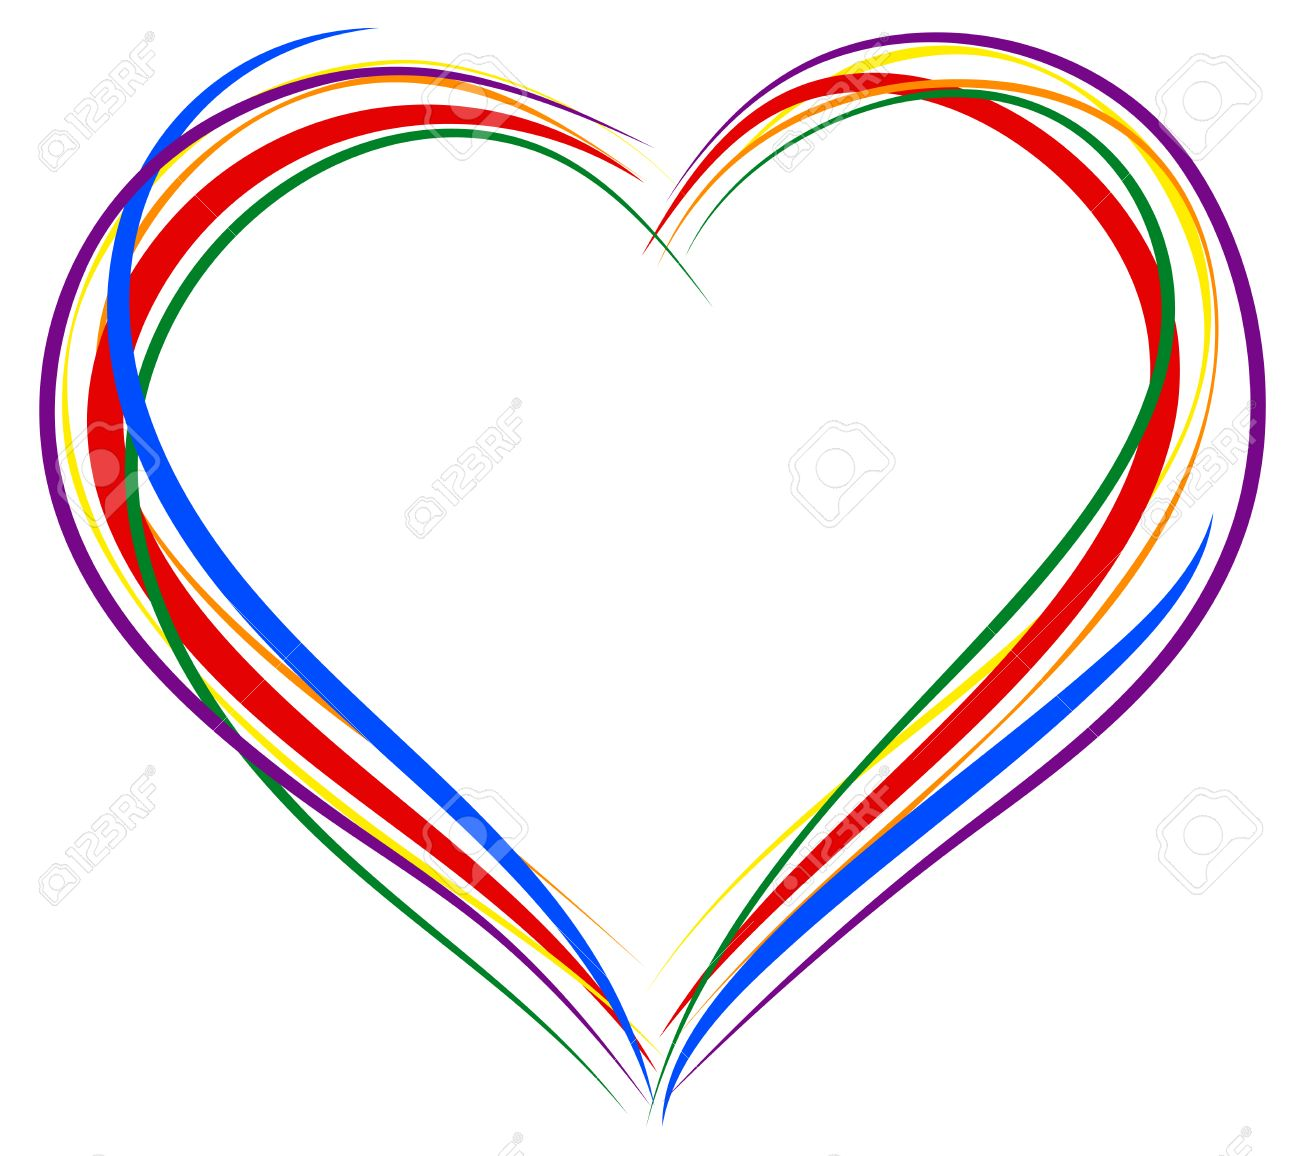 Lgbt heart symbol sign of heart outline rainbow heart for lgbt heart symbol sign of heart outline rainbow heart for greeting card for valentines buycottarizona Image collections